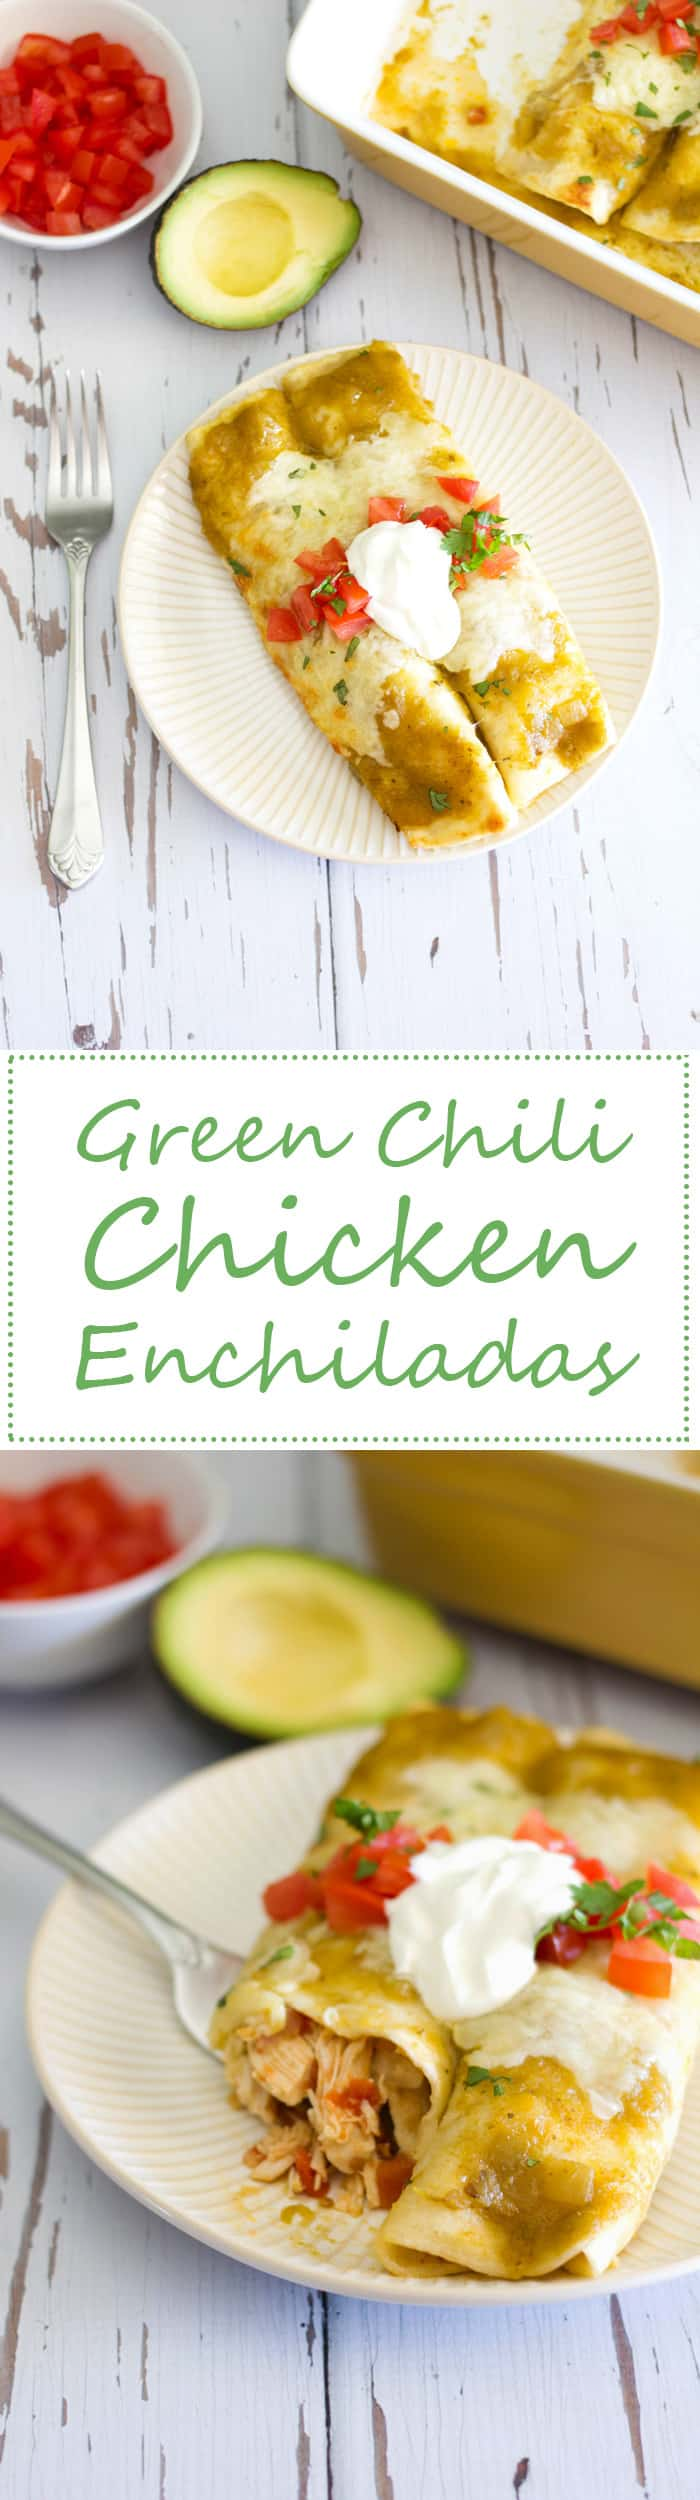 These easy green chili chicken enchiladas are out-of-this-world delicious and take little effort to put together!